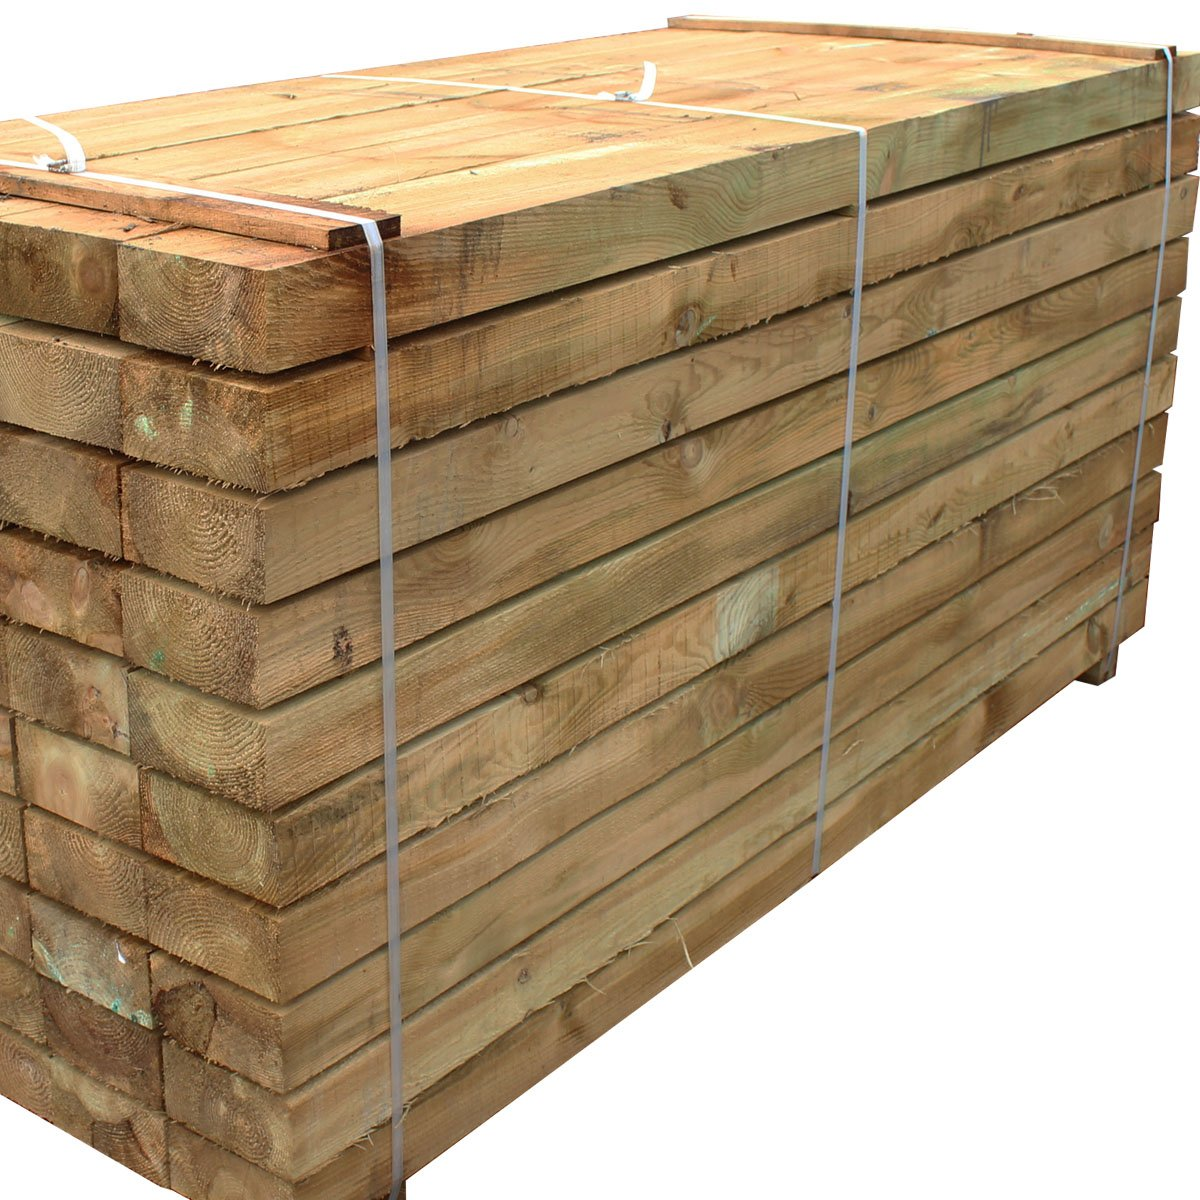 Suregreen Tanalised Treated Softwood Timber Railway Sleeper 200x100MM  Thick, 2 4m